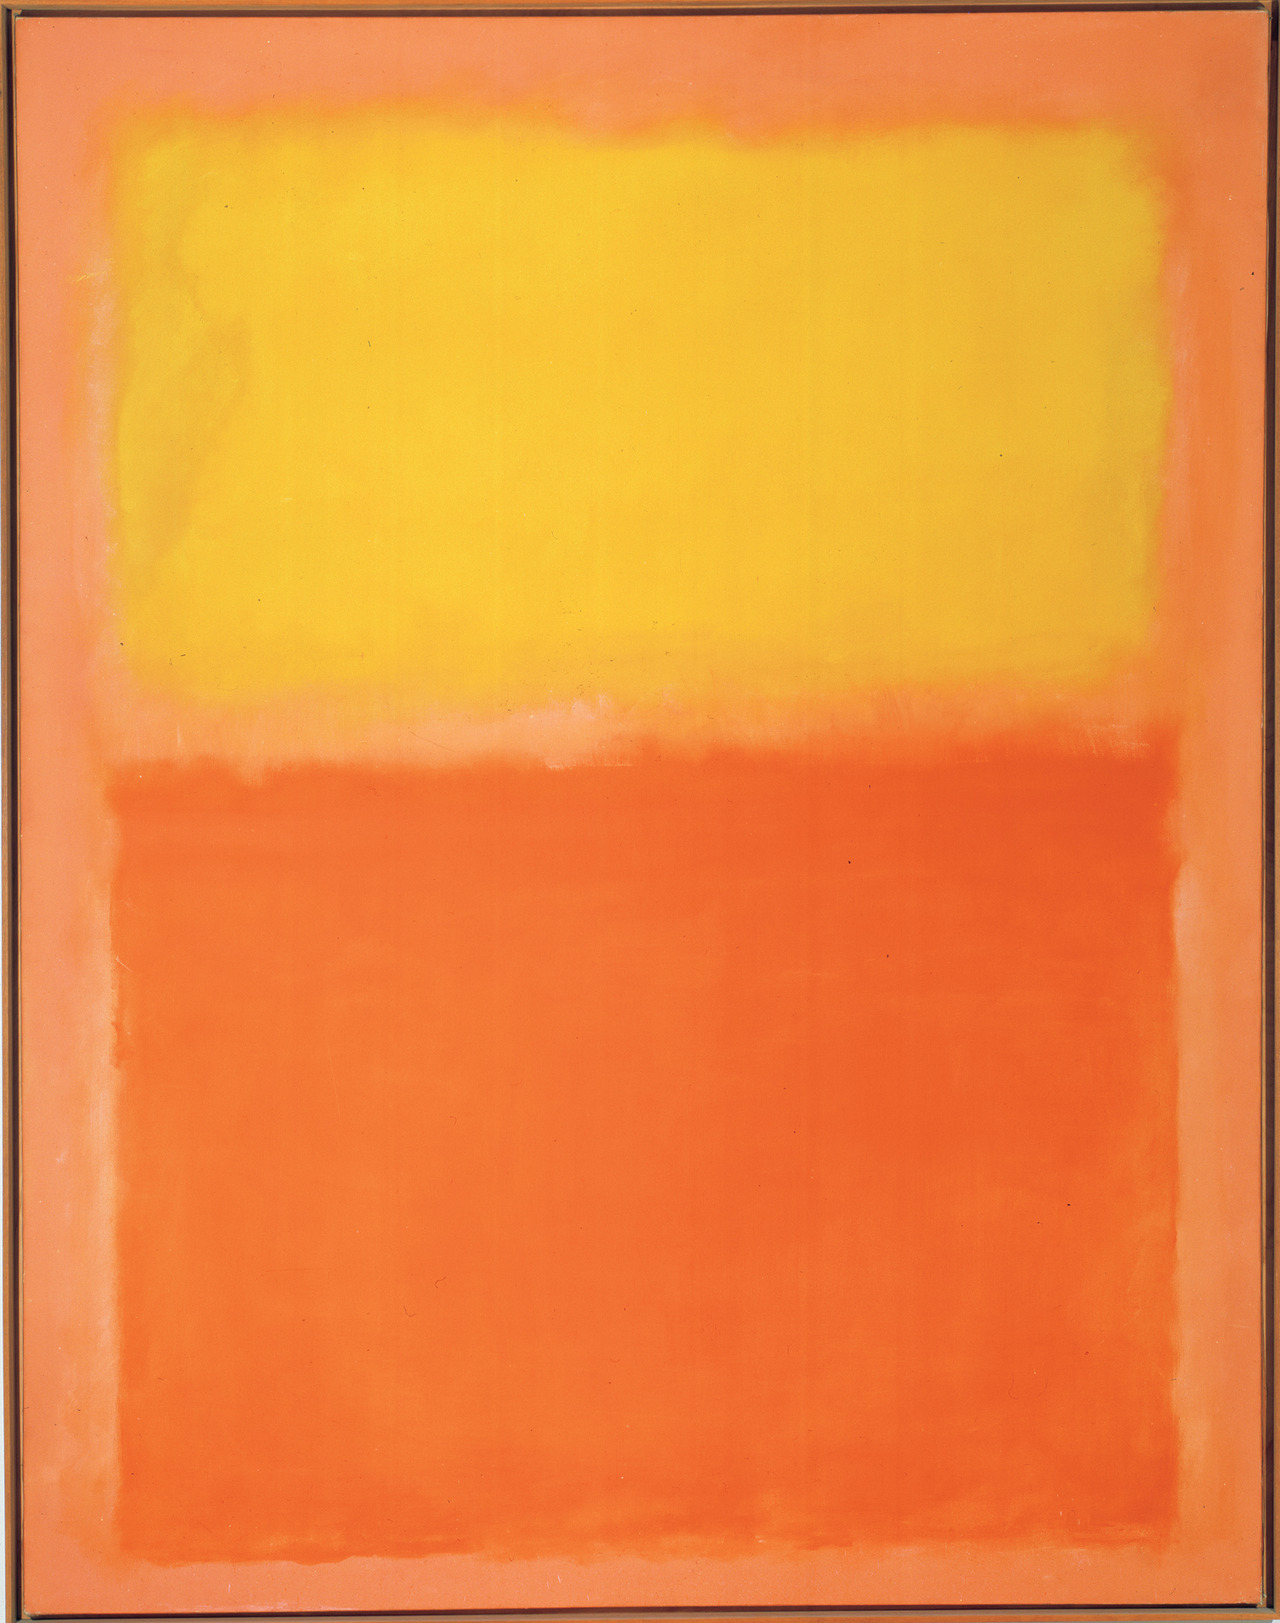 "albrightknox :       Docent Stories: Mary Therrien     Fifth Graders Respond to Mark Rothko's  Orange and Yellow       In honor of our first   Art'scool  tour  of the season today, here's a favorite story from our docent Mary Therrien:     I led a group of fifth graders to  Mark Rothko's  Orange and Yellow , 1956 , and asked, ""Would anyone want this painting in their bedroom?""     A boy's hand shot up, and he said, ""Yes!""     ""Why?"" I asked.     ""Because I see a pillow (yellow) and a blanket (orange).""     Then, a second boy's hand went up, and he said, ""Me too!""     ""Why?"" I asked.     ""I want it directly across from my bed. When I wake up in the morning, I'll see a sunrise (yellow), and when I go to bed at night, I'll see a sunset (orange).""    Image: © 1998 Kate Rothko Prizel & Christopher Rothko / Artists Rights Society (ARS), New York"